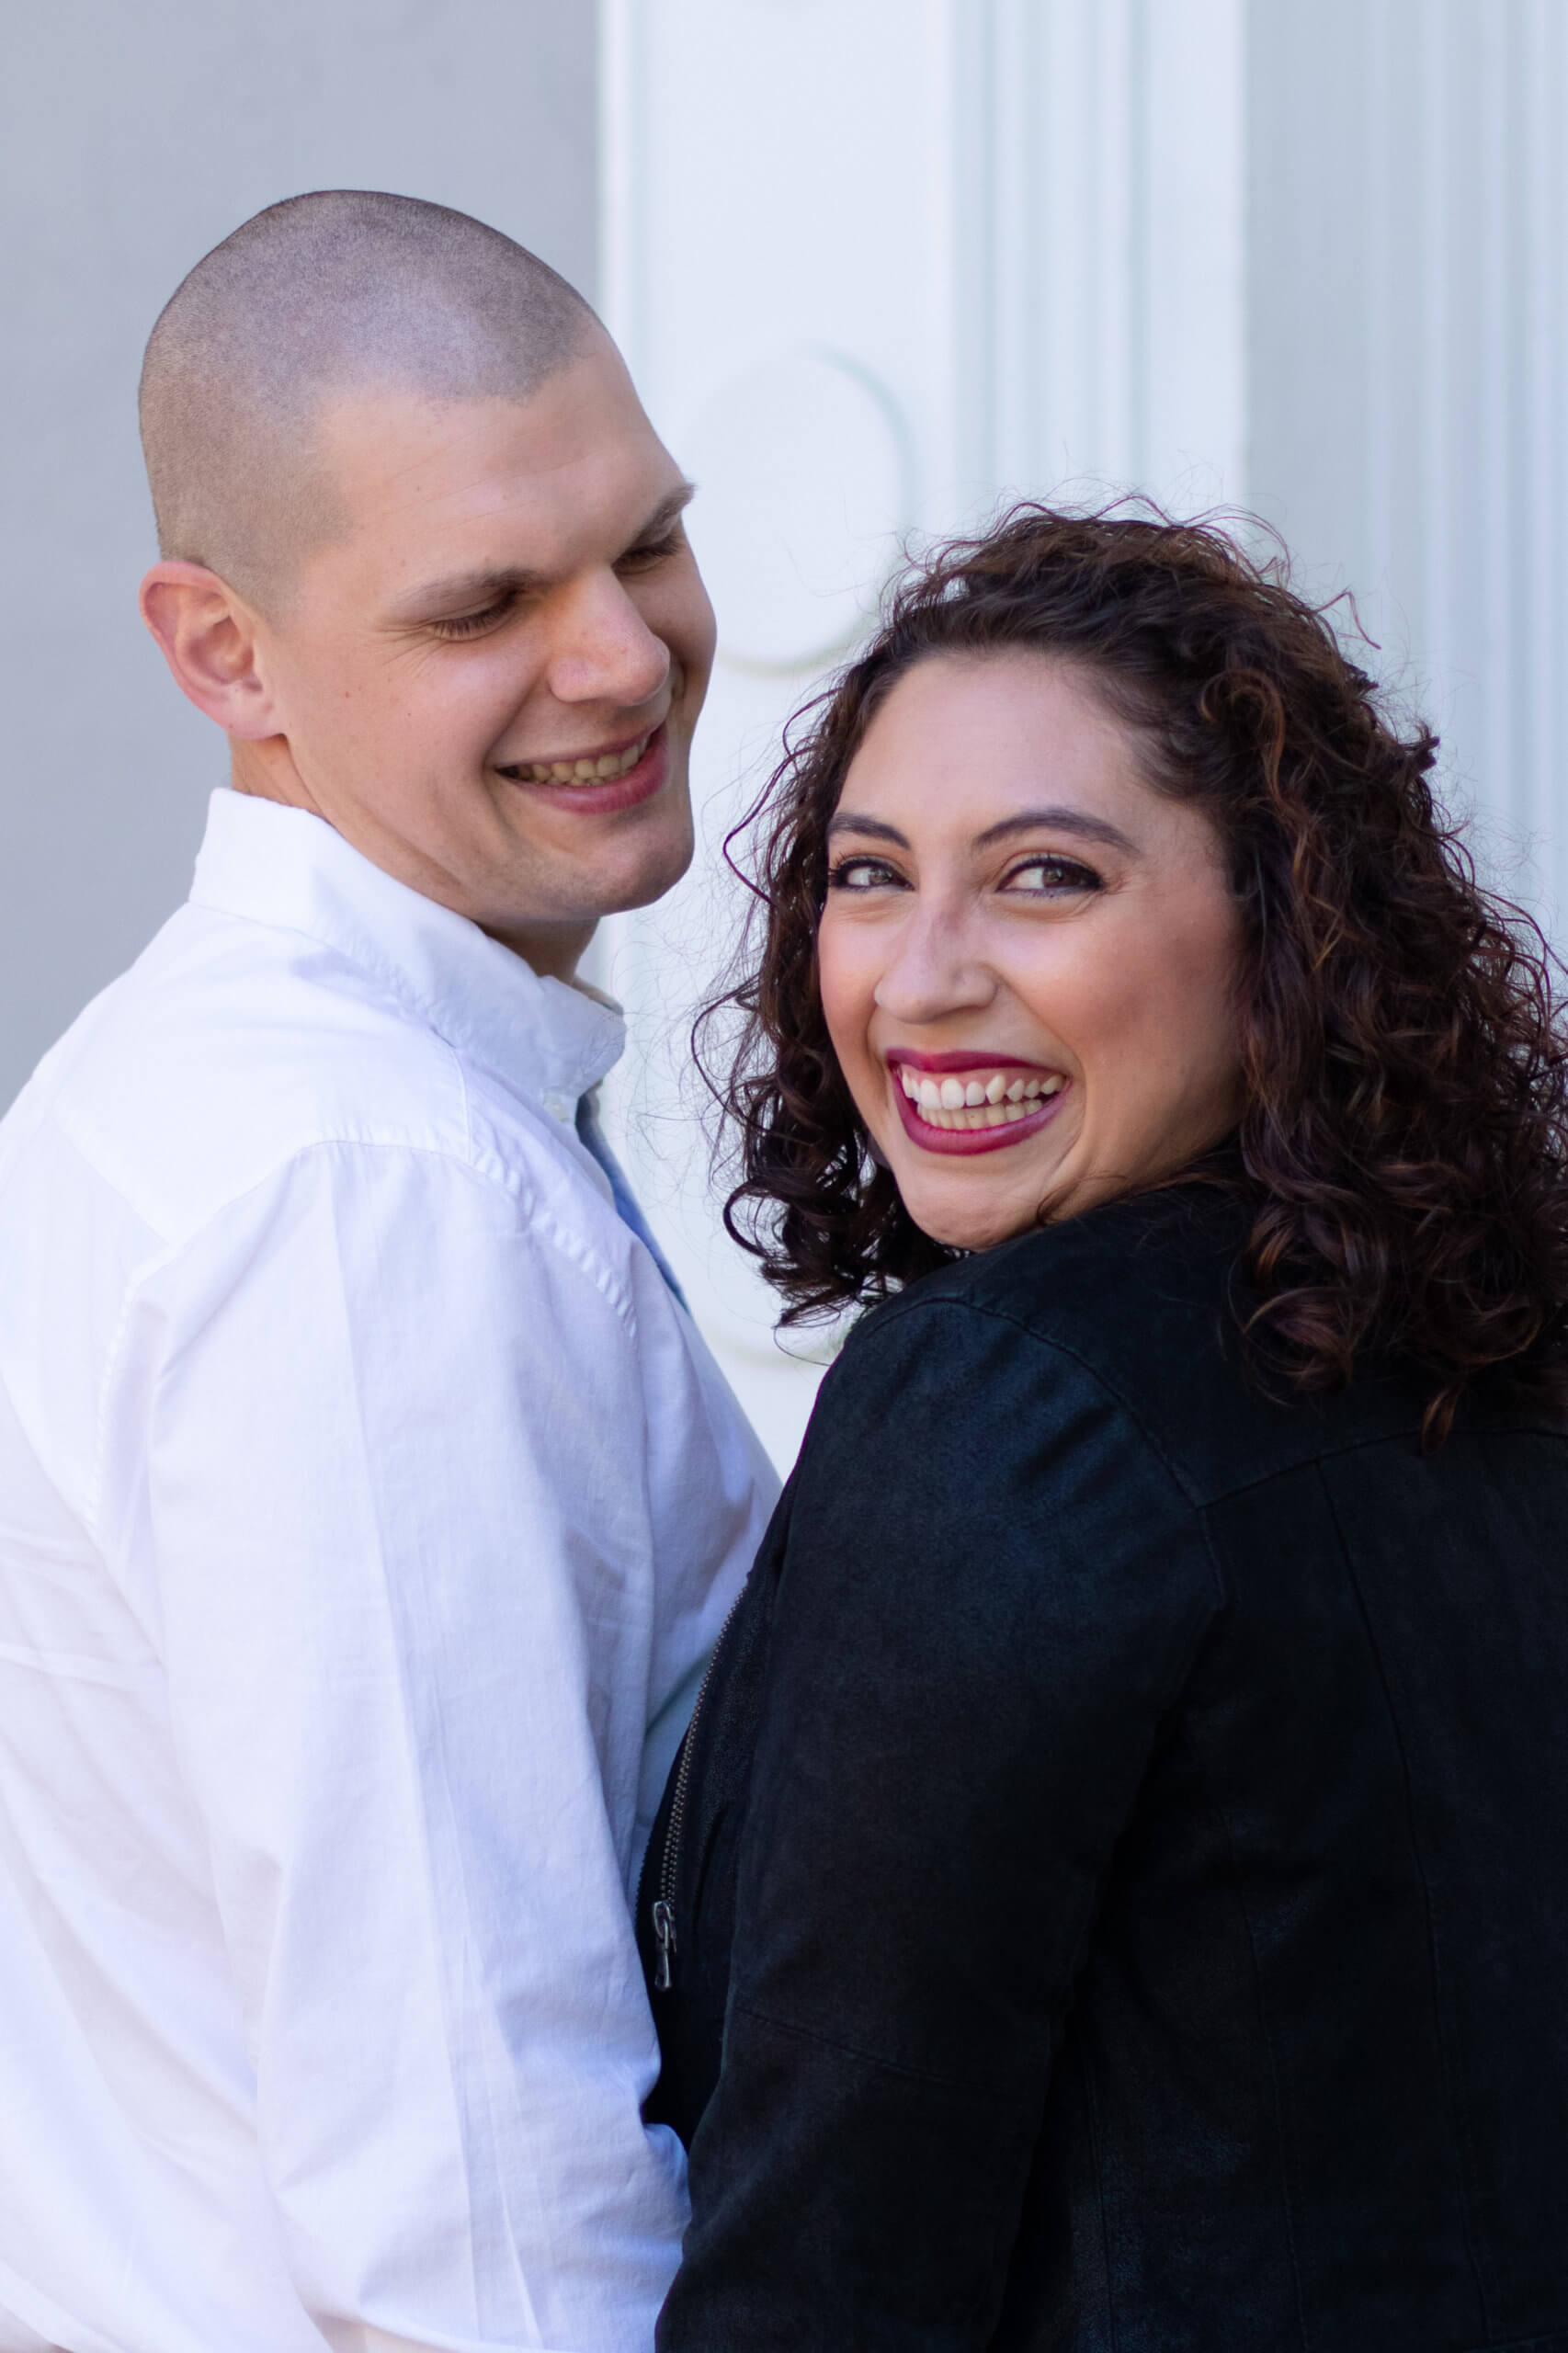 Engagement Session in Haddonfield, NJ